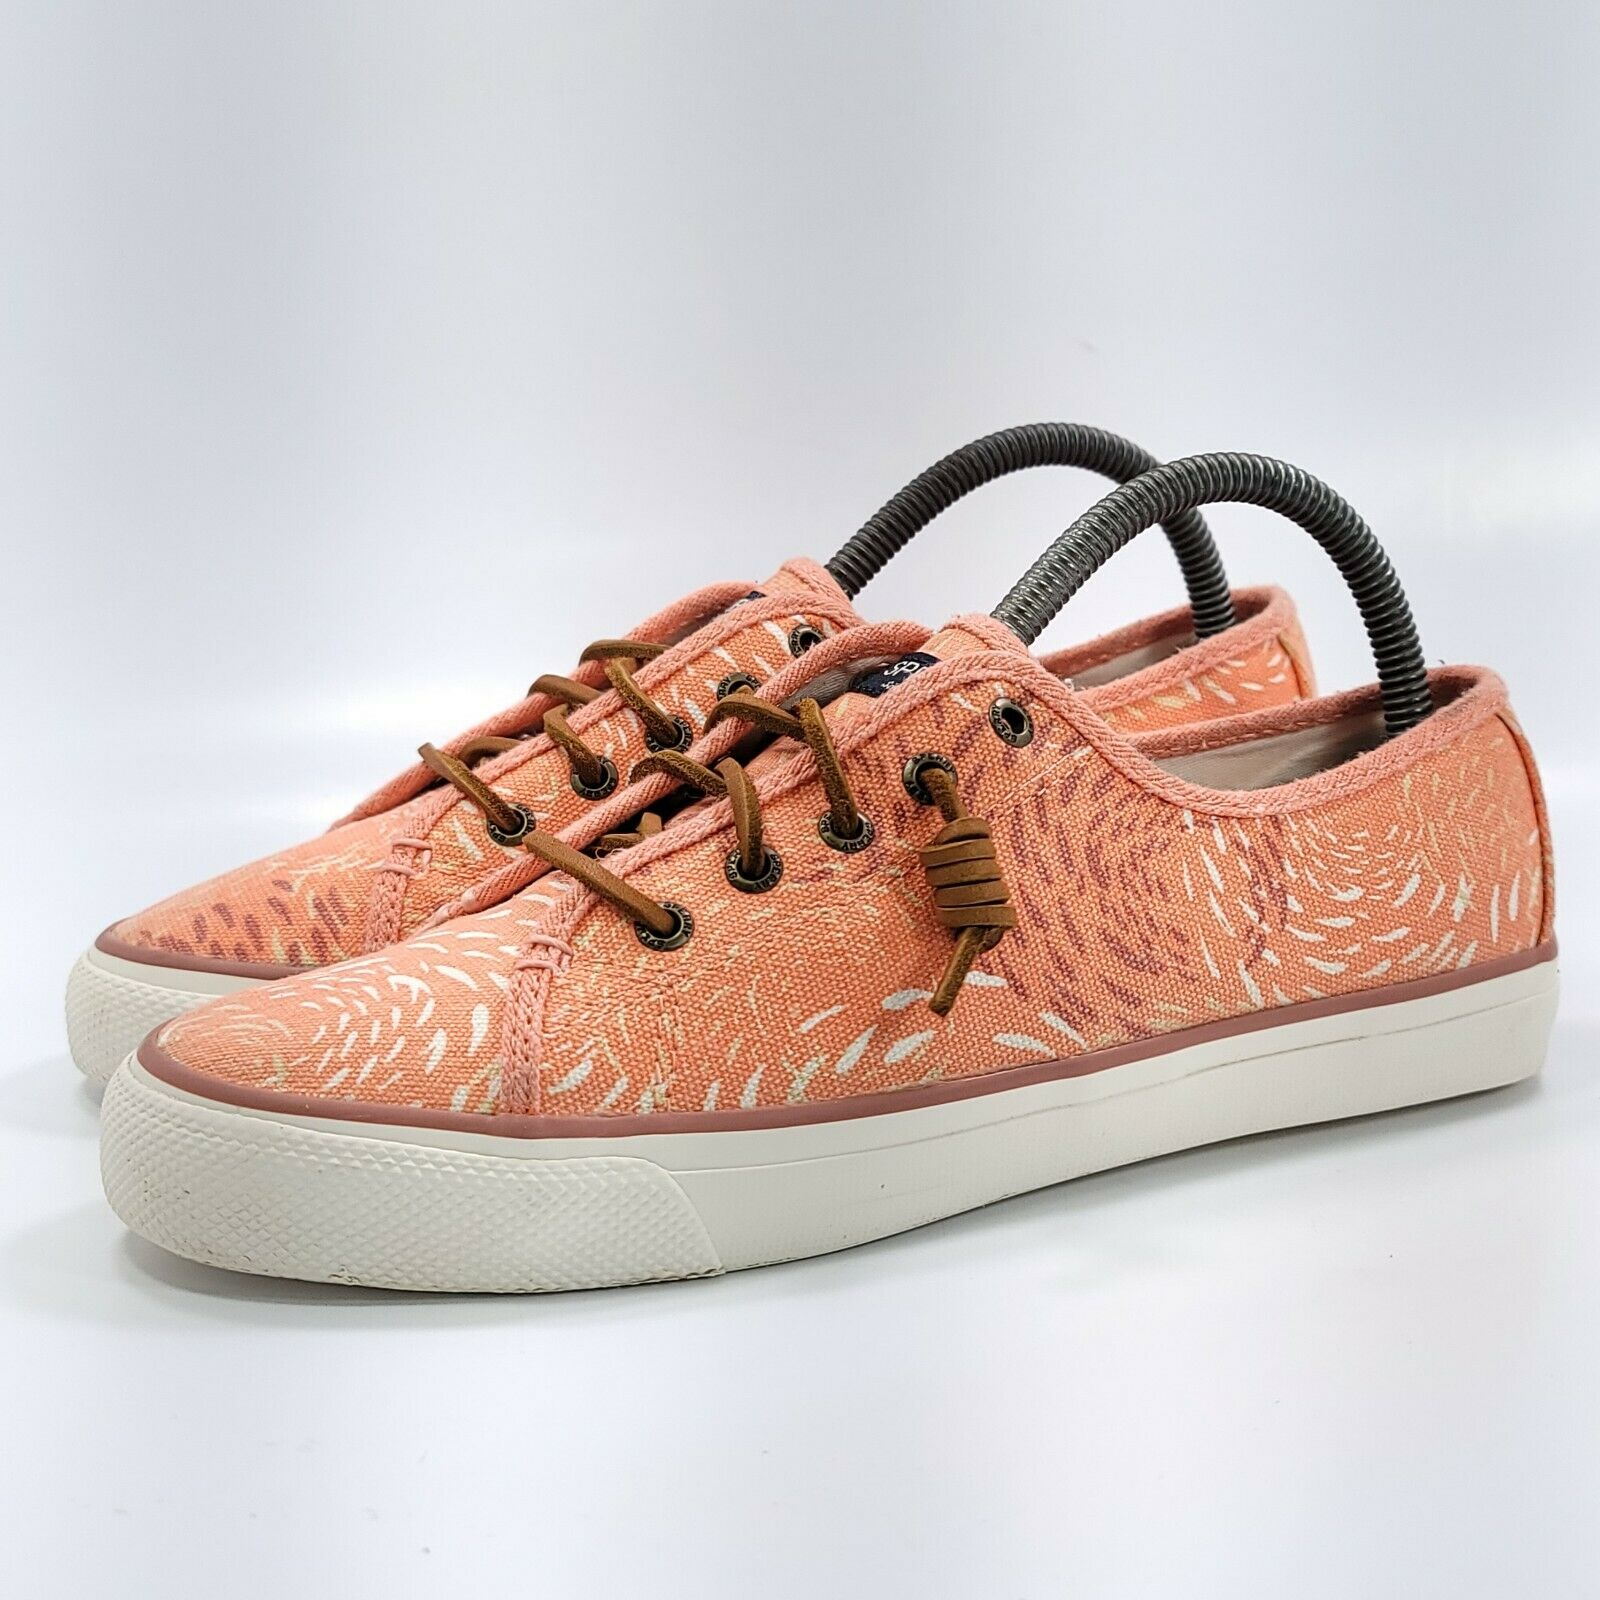 Sperry Top Sider Seacoast Casal Shoe Womens Size 8.5 STS95424 Pink White